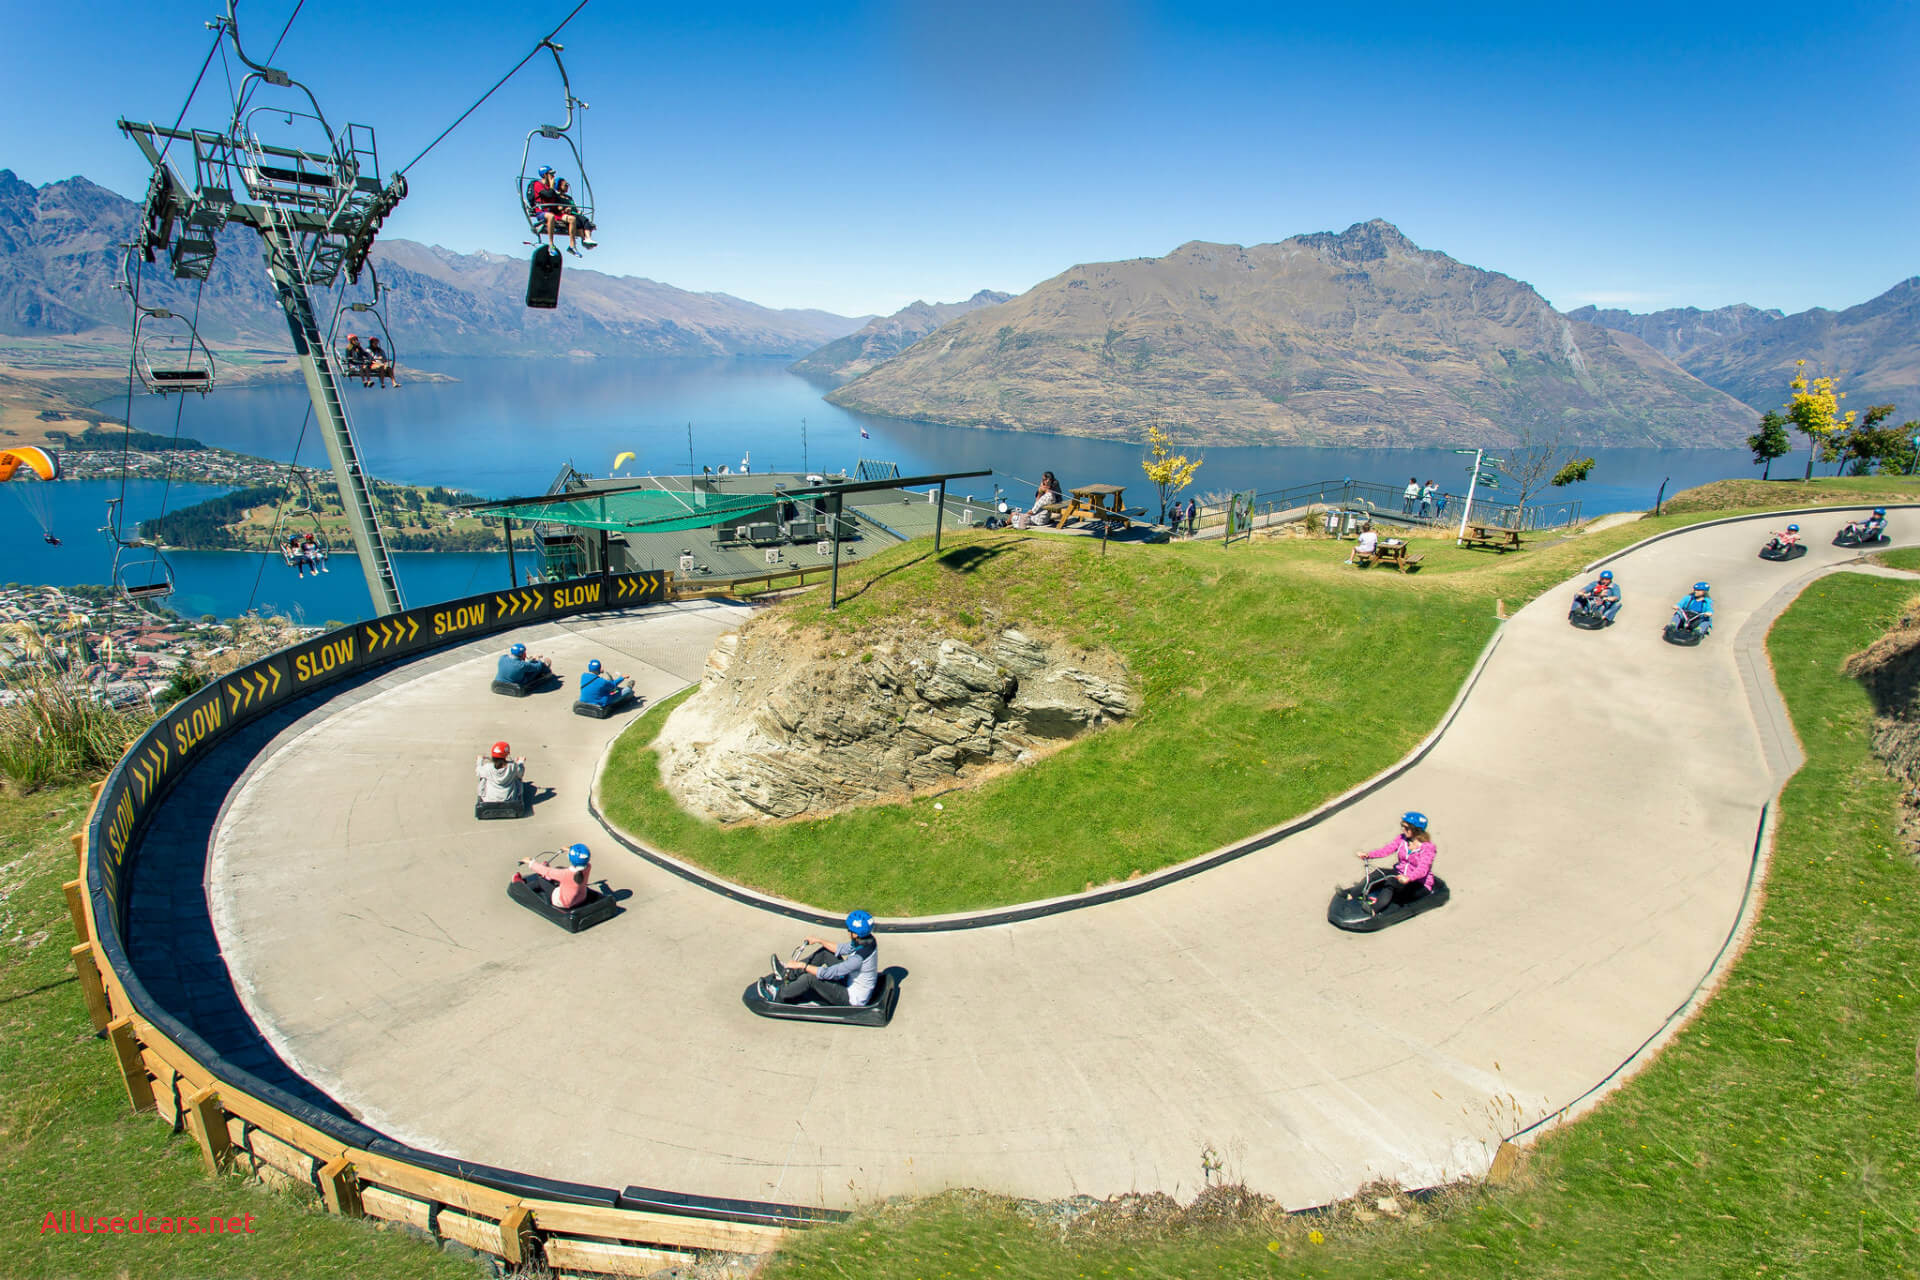 Used Cars for Sale Queenstown Lovely Cars for Sale In Queenstown Blog Otomotif Keren